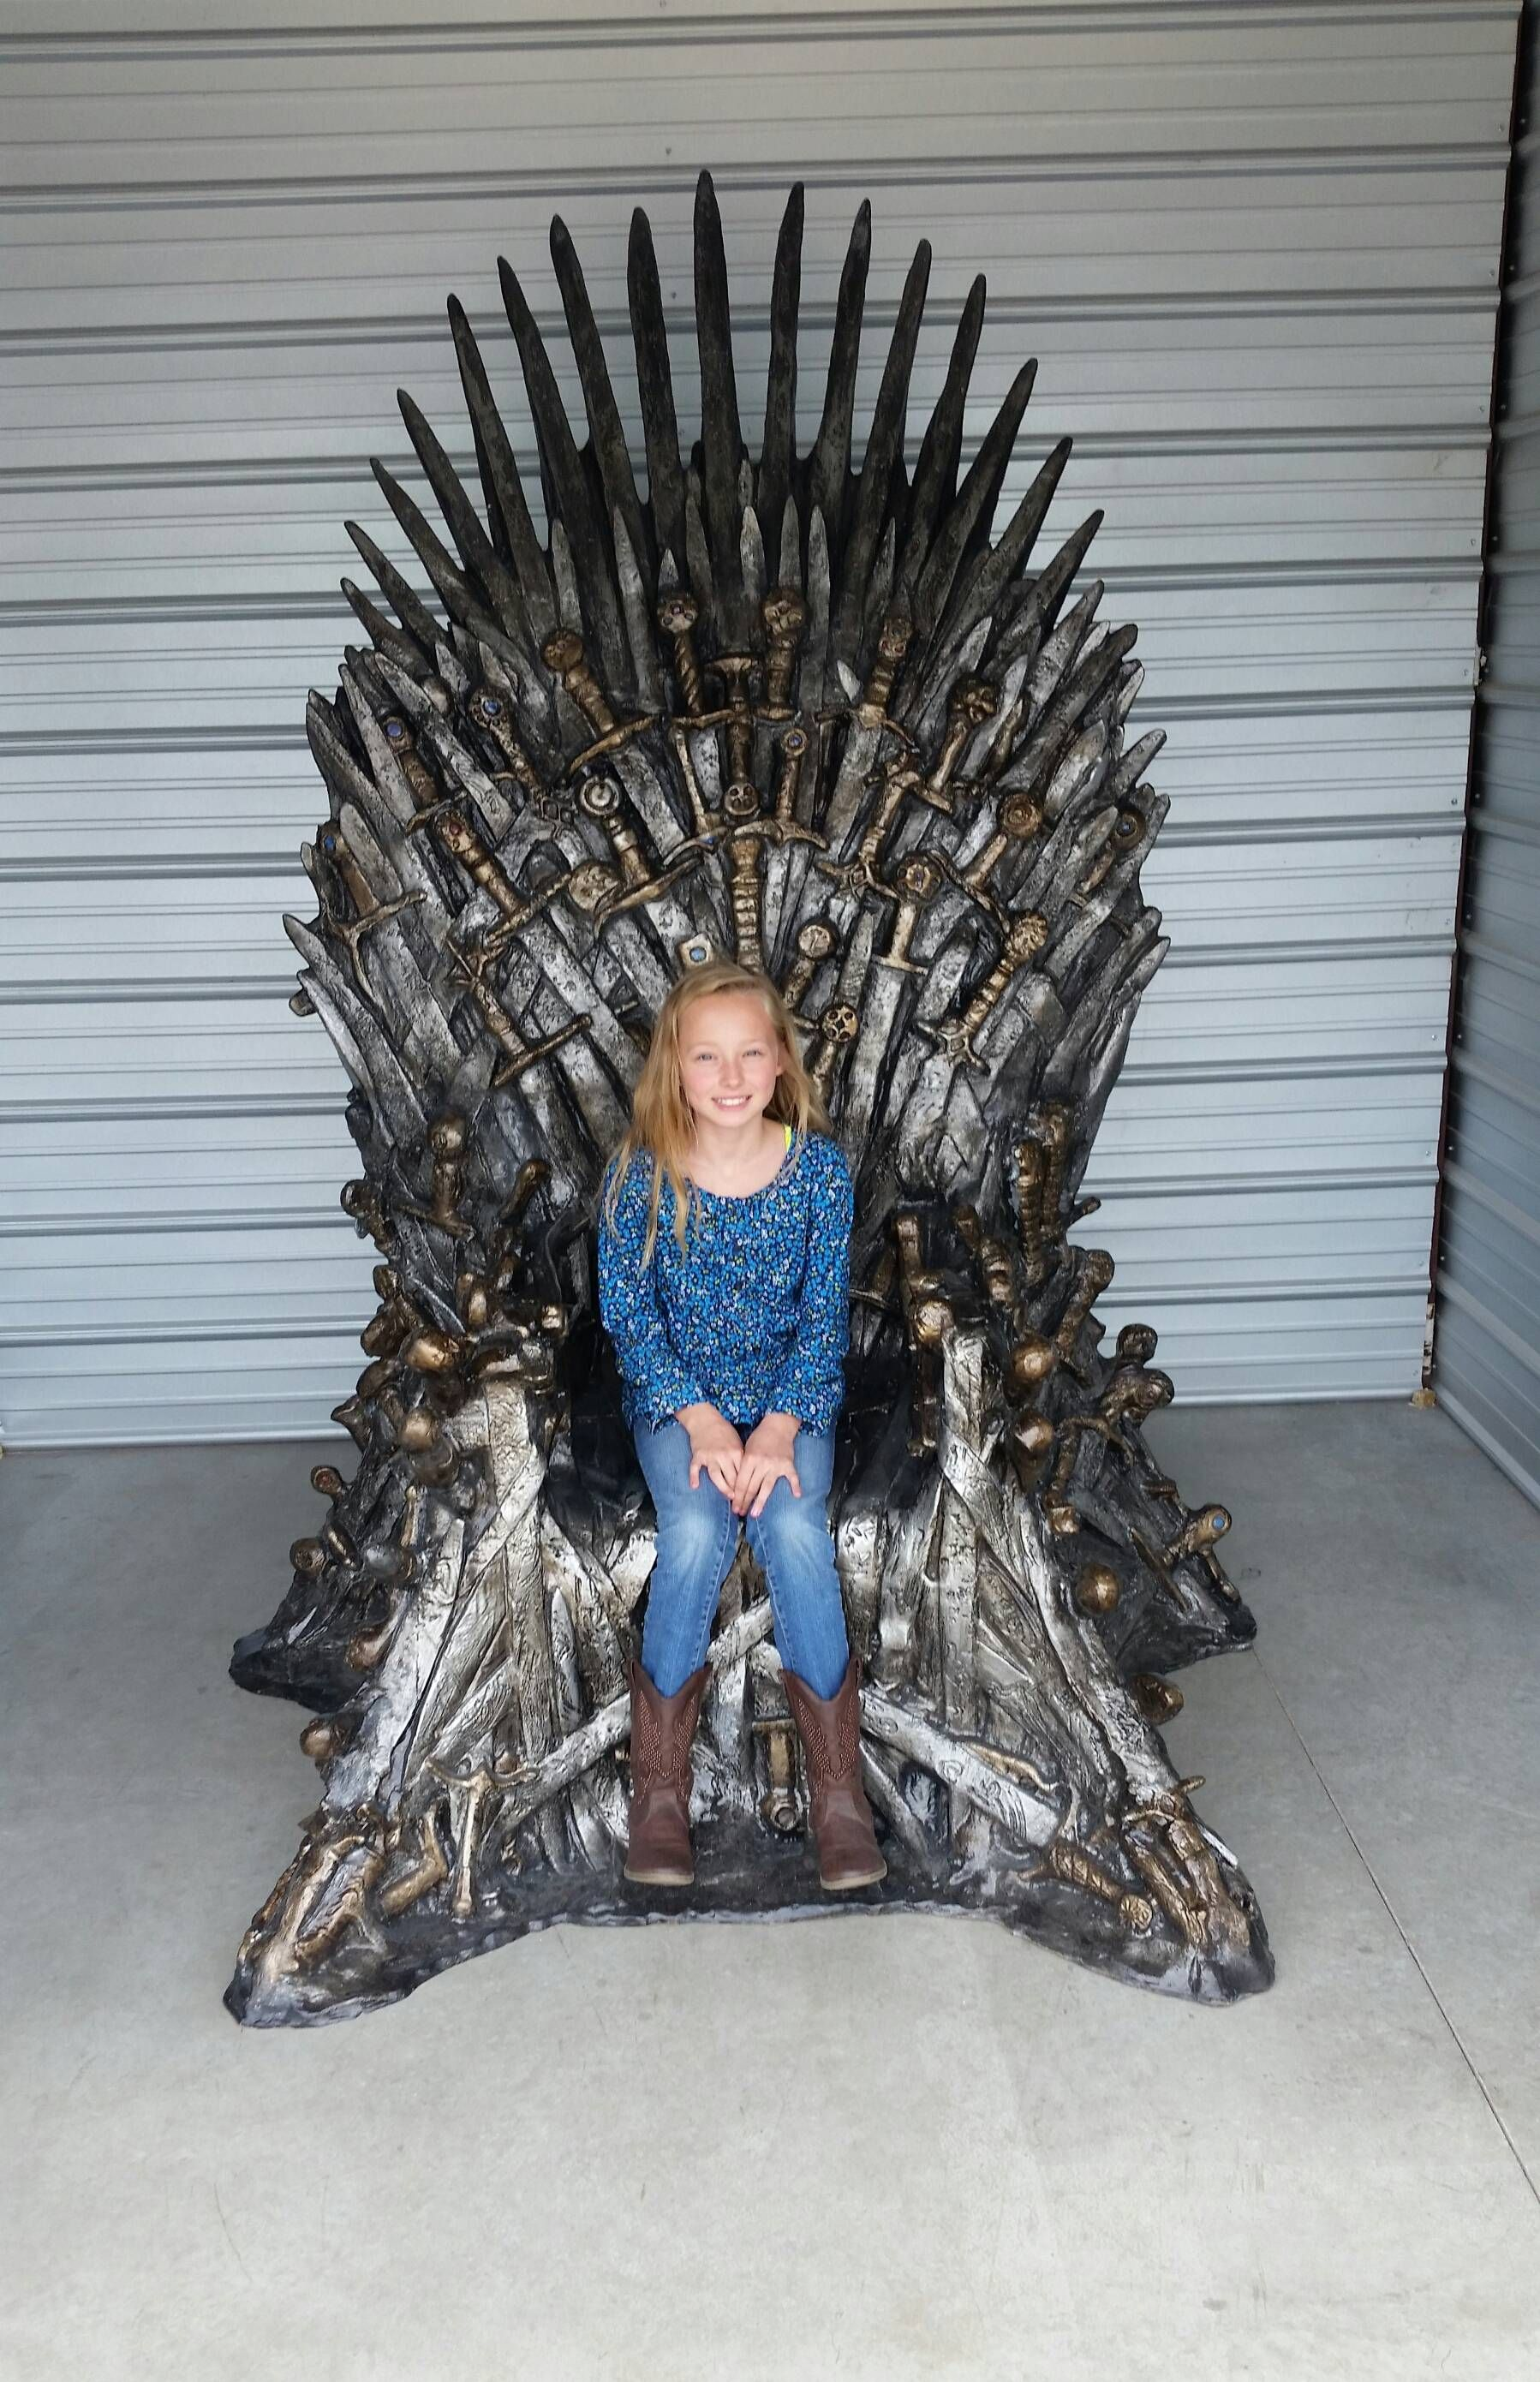 game of throne chair kohls baby rocking life size replica the iron imgur movies tv